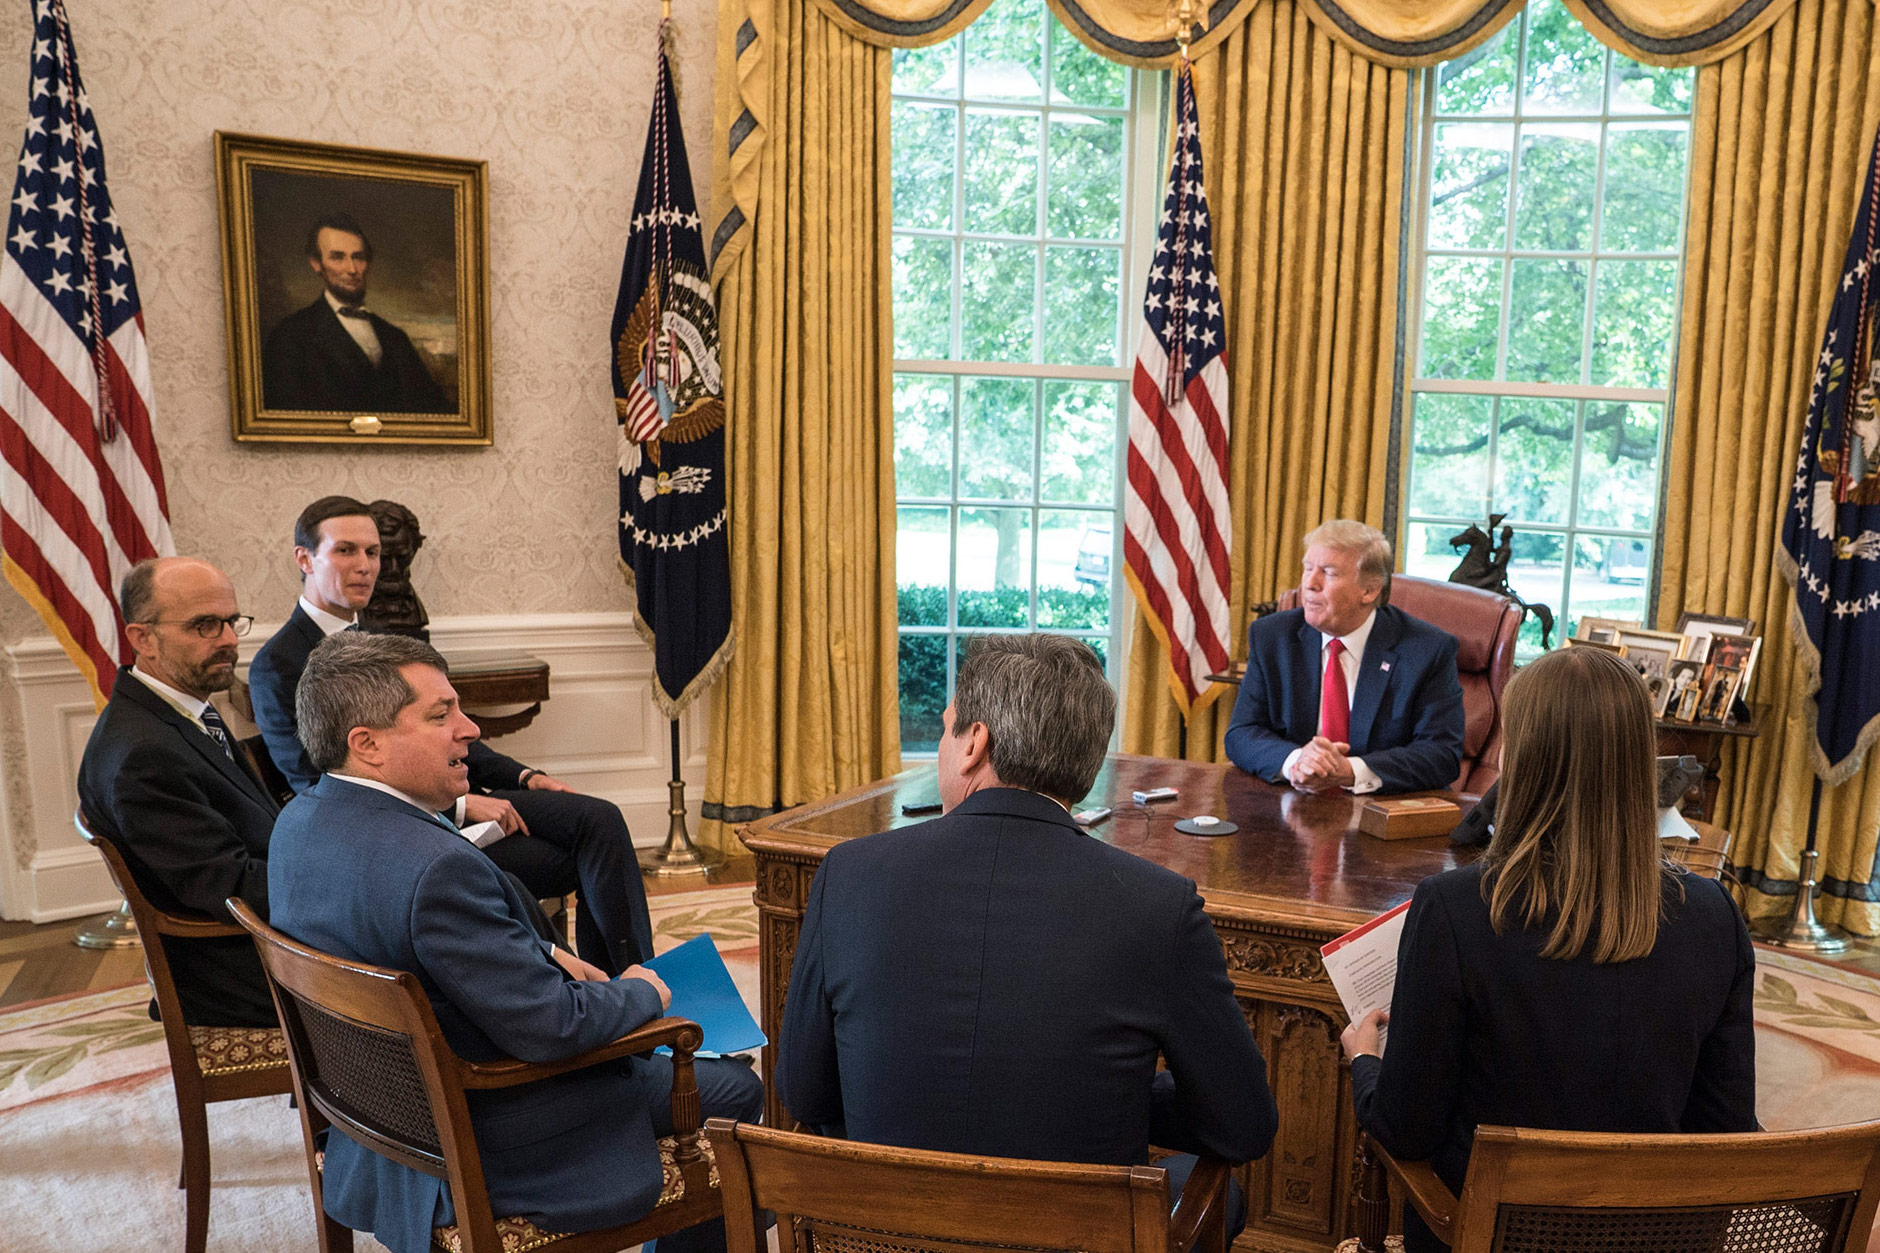 The TIME team with President Trump and senior adviser Jared Kushner, who left at the start of the interview.